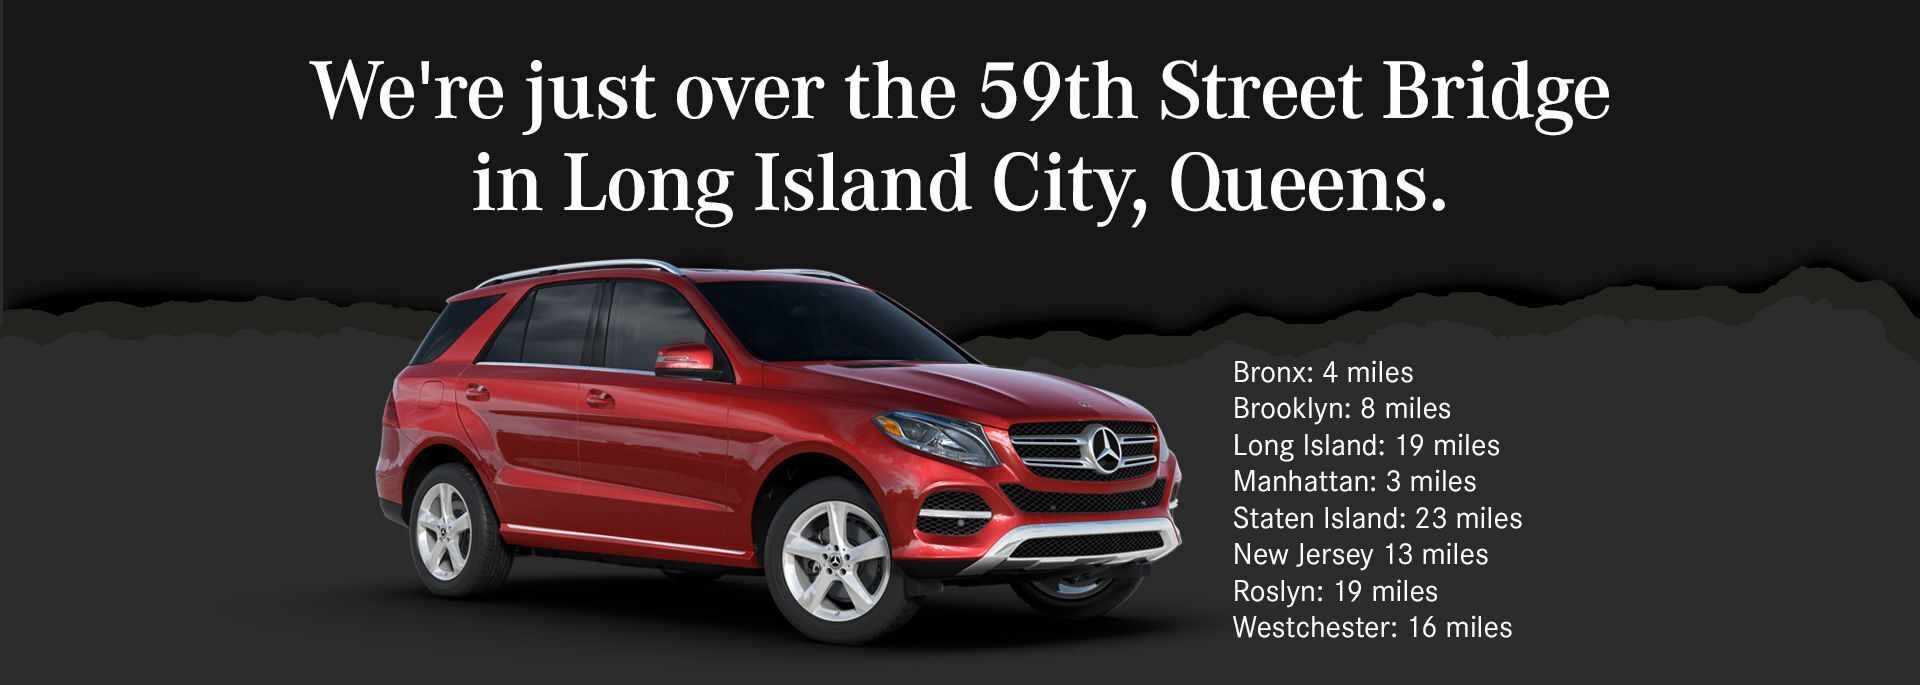 Used Cars Long Island Ny >> Mercedes Benz Dealership Long Island Cityqueens Ny Used